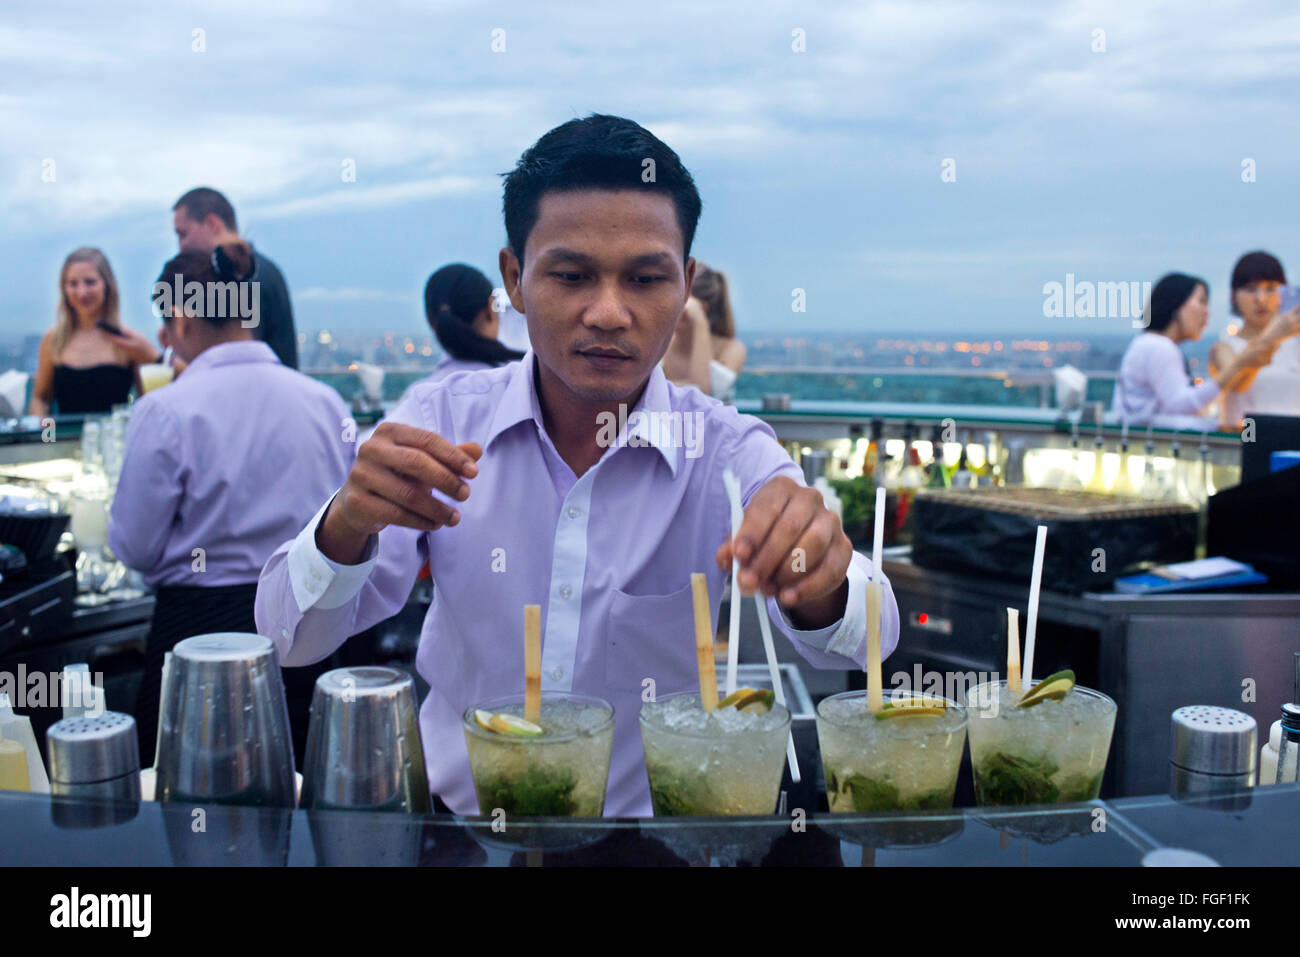 Cocktails at Sirocco rooftop. Thailand. Asia, Bangkok, capital, Centara Grand, Chao Praya River, City, cocktails, Stock Photo